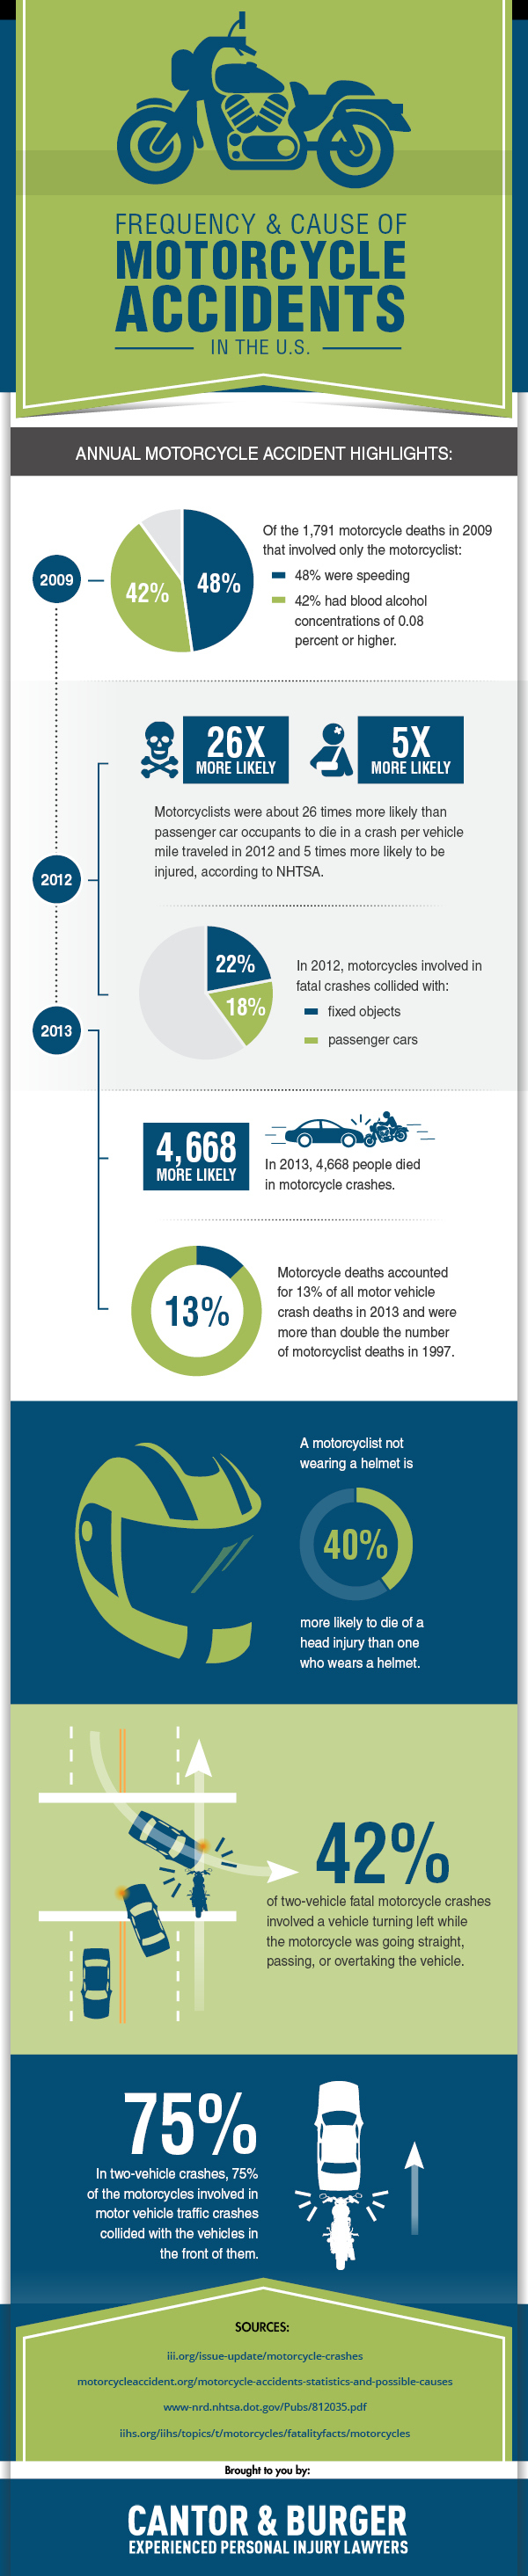 motorcycle-accidents-infographic